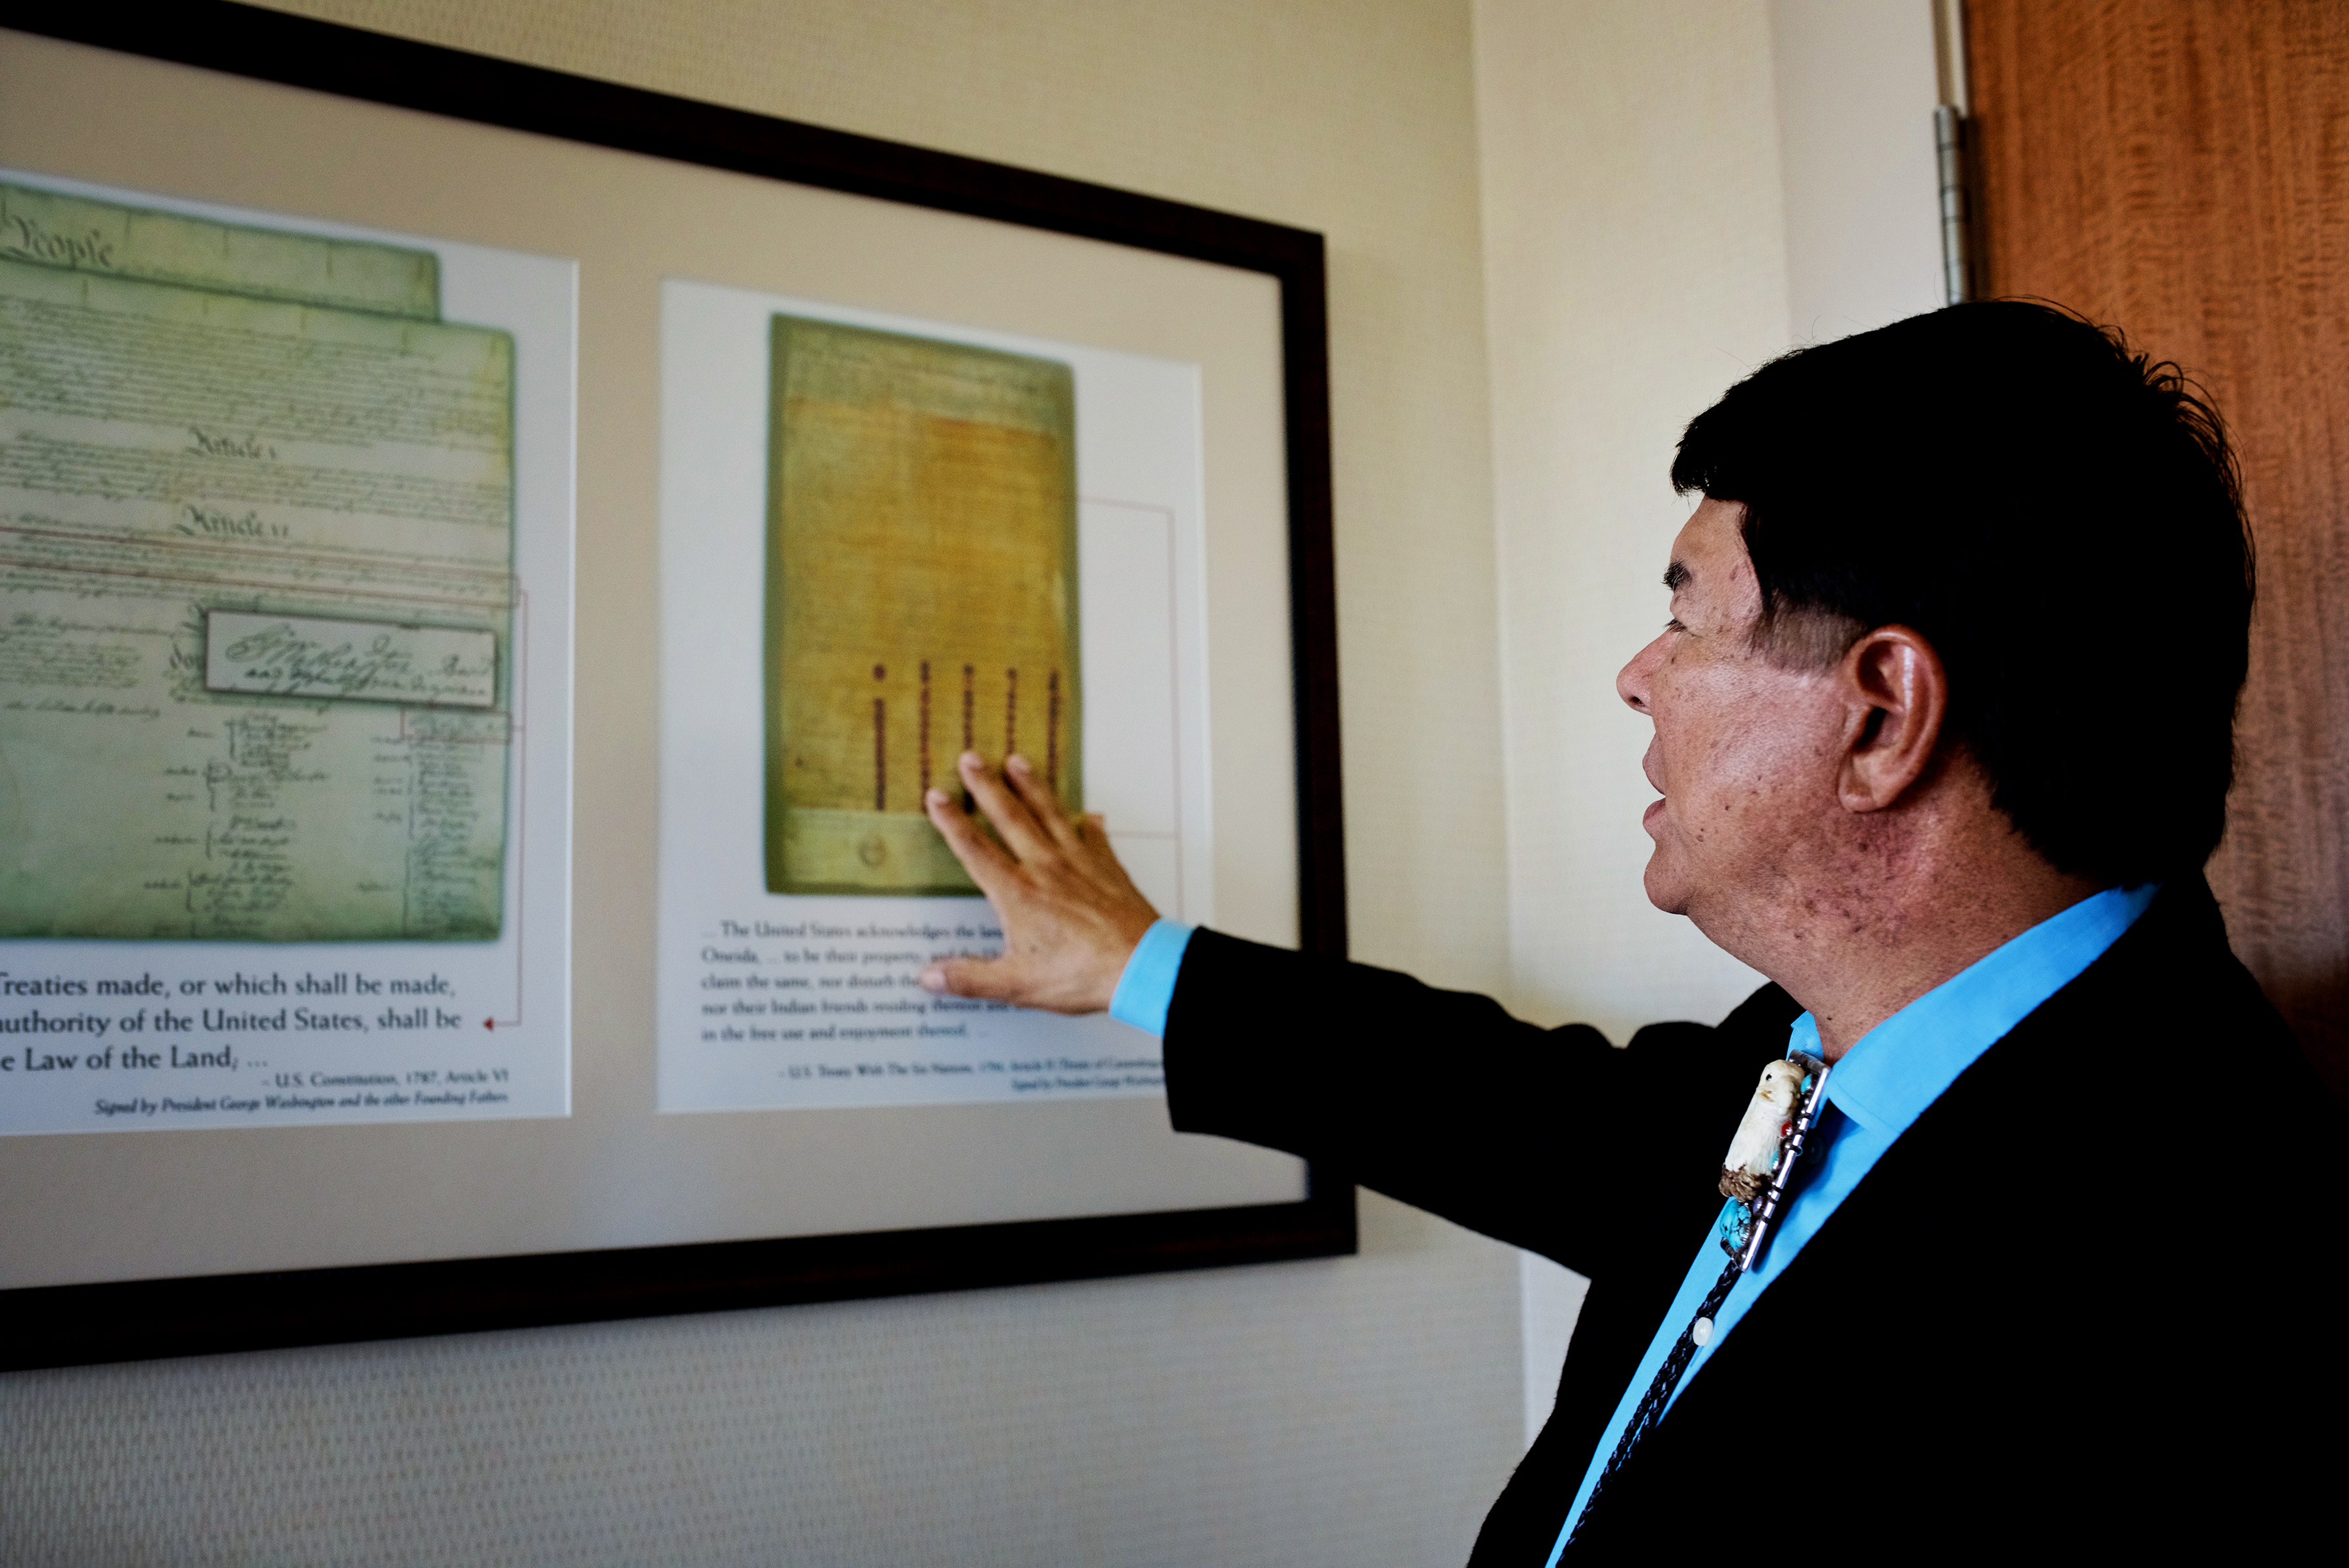 Oneida Indian Nation Representative Ray Halbritter with a framed copy of the U.S. Constitution and the 1794 Treaty of Canandaigua.